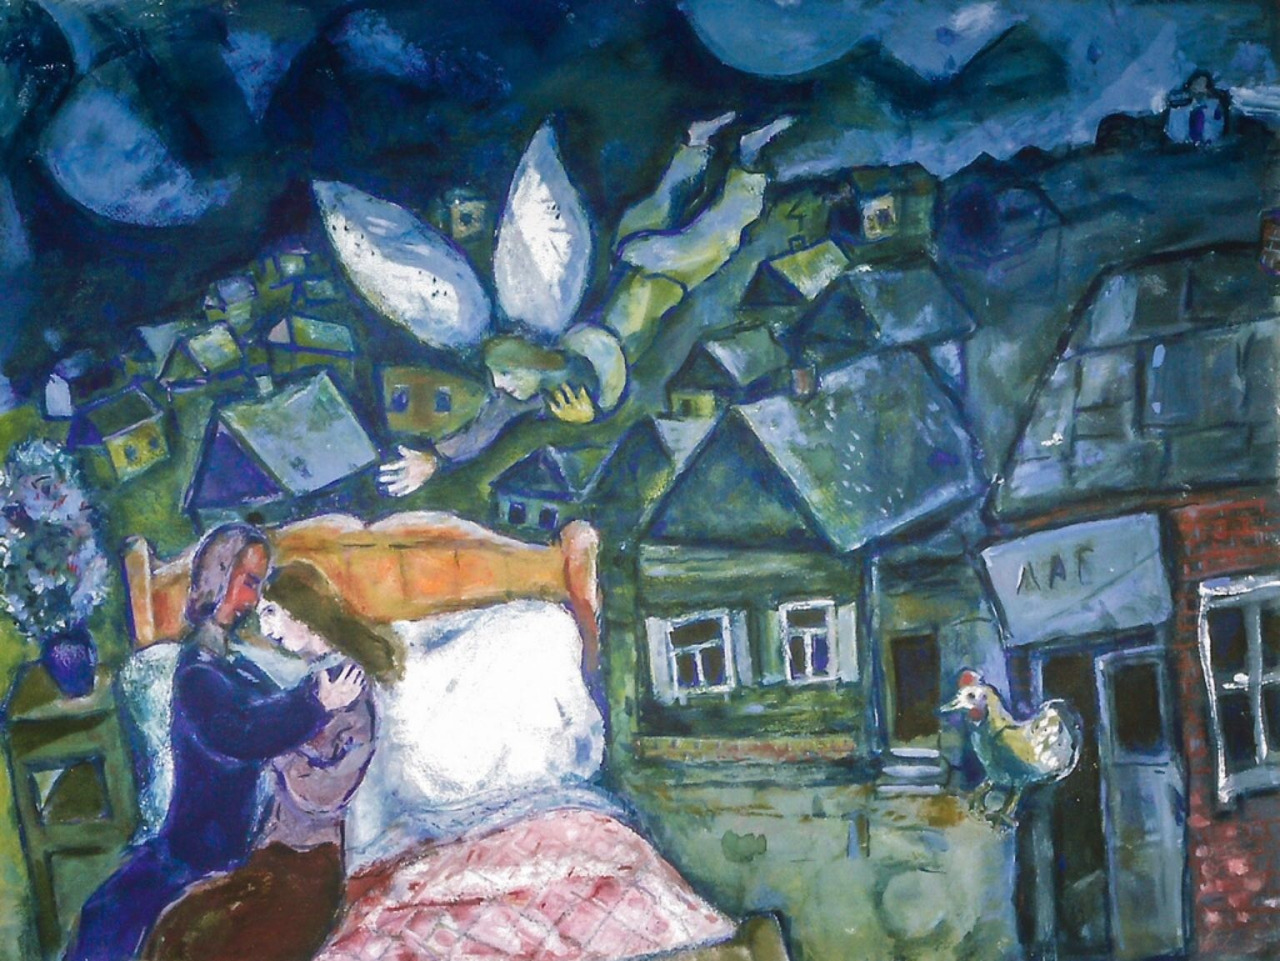 Paintings By Chagall Married Couple - Defendbigbird.com